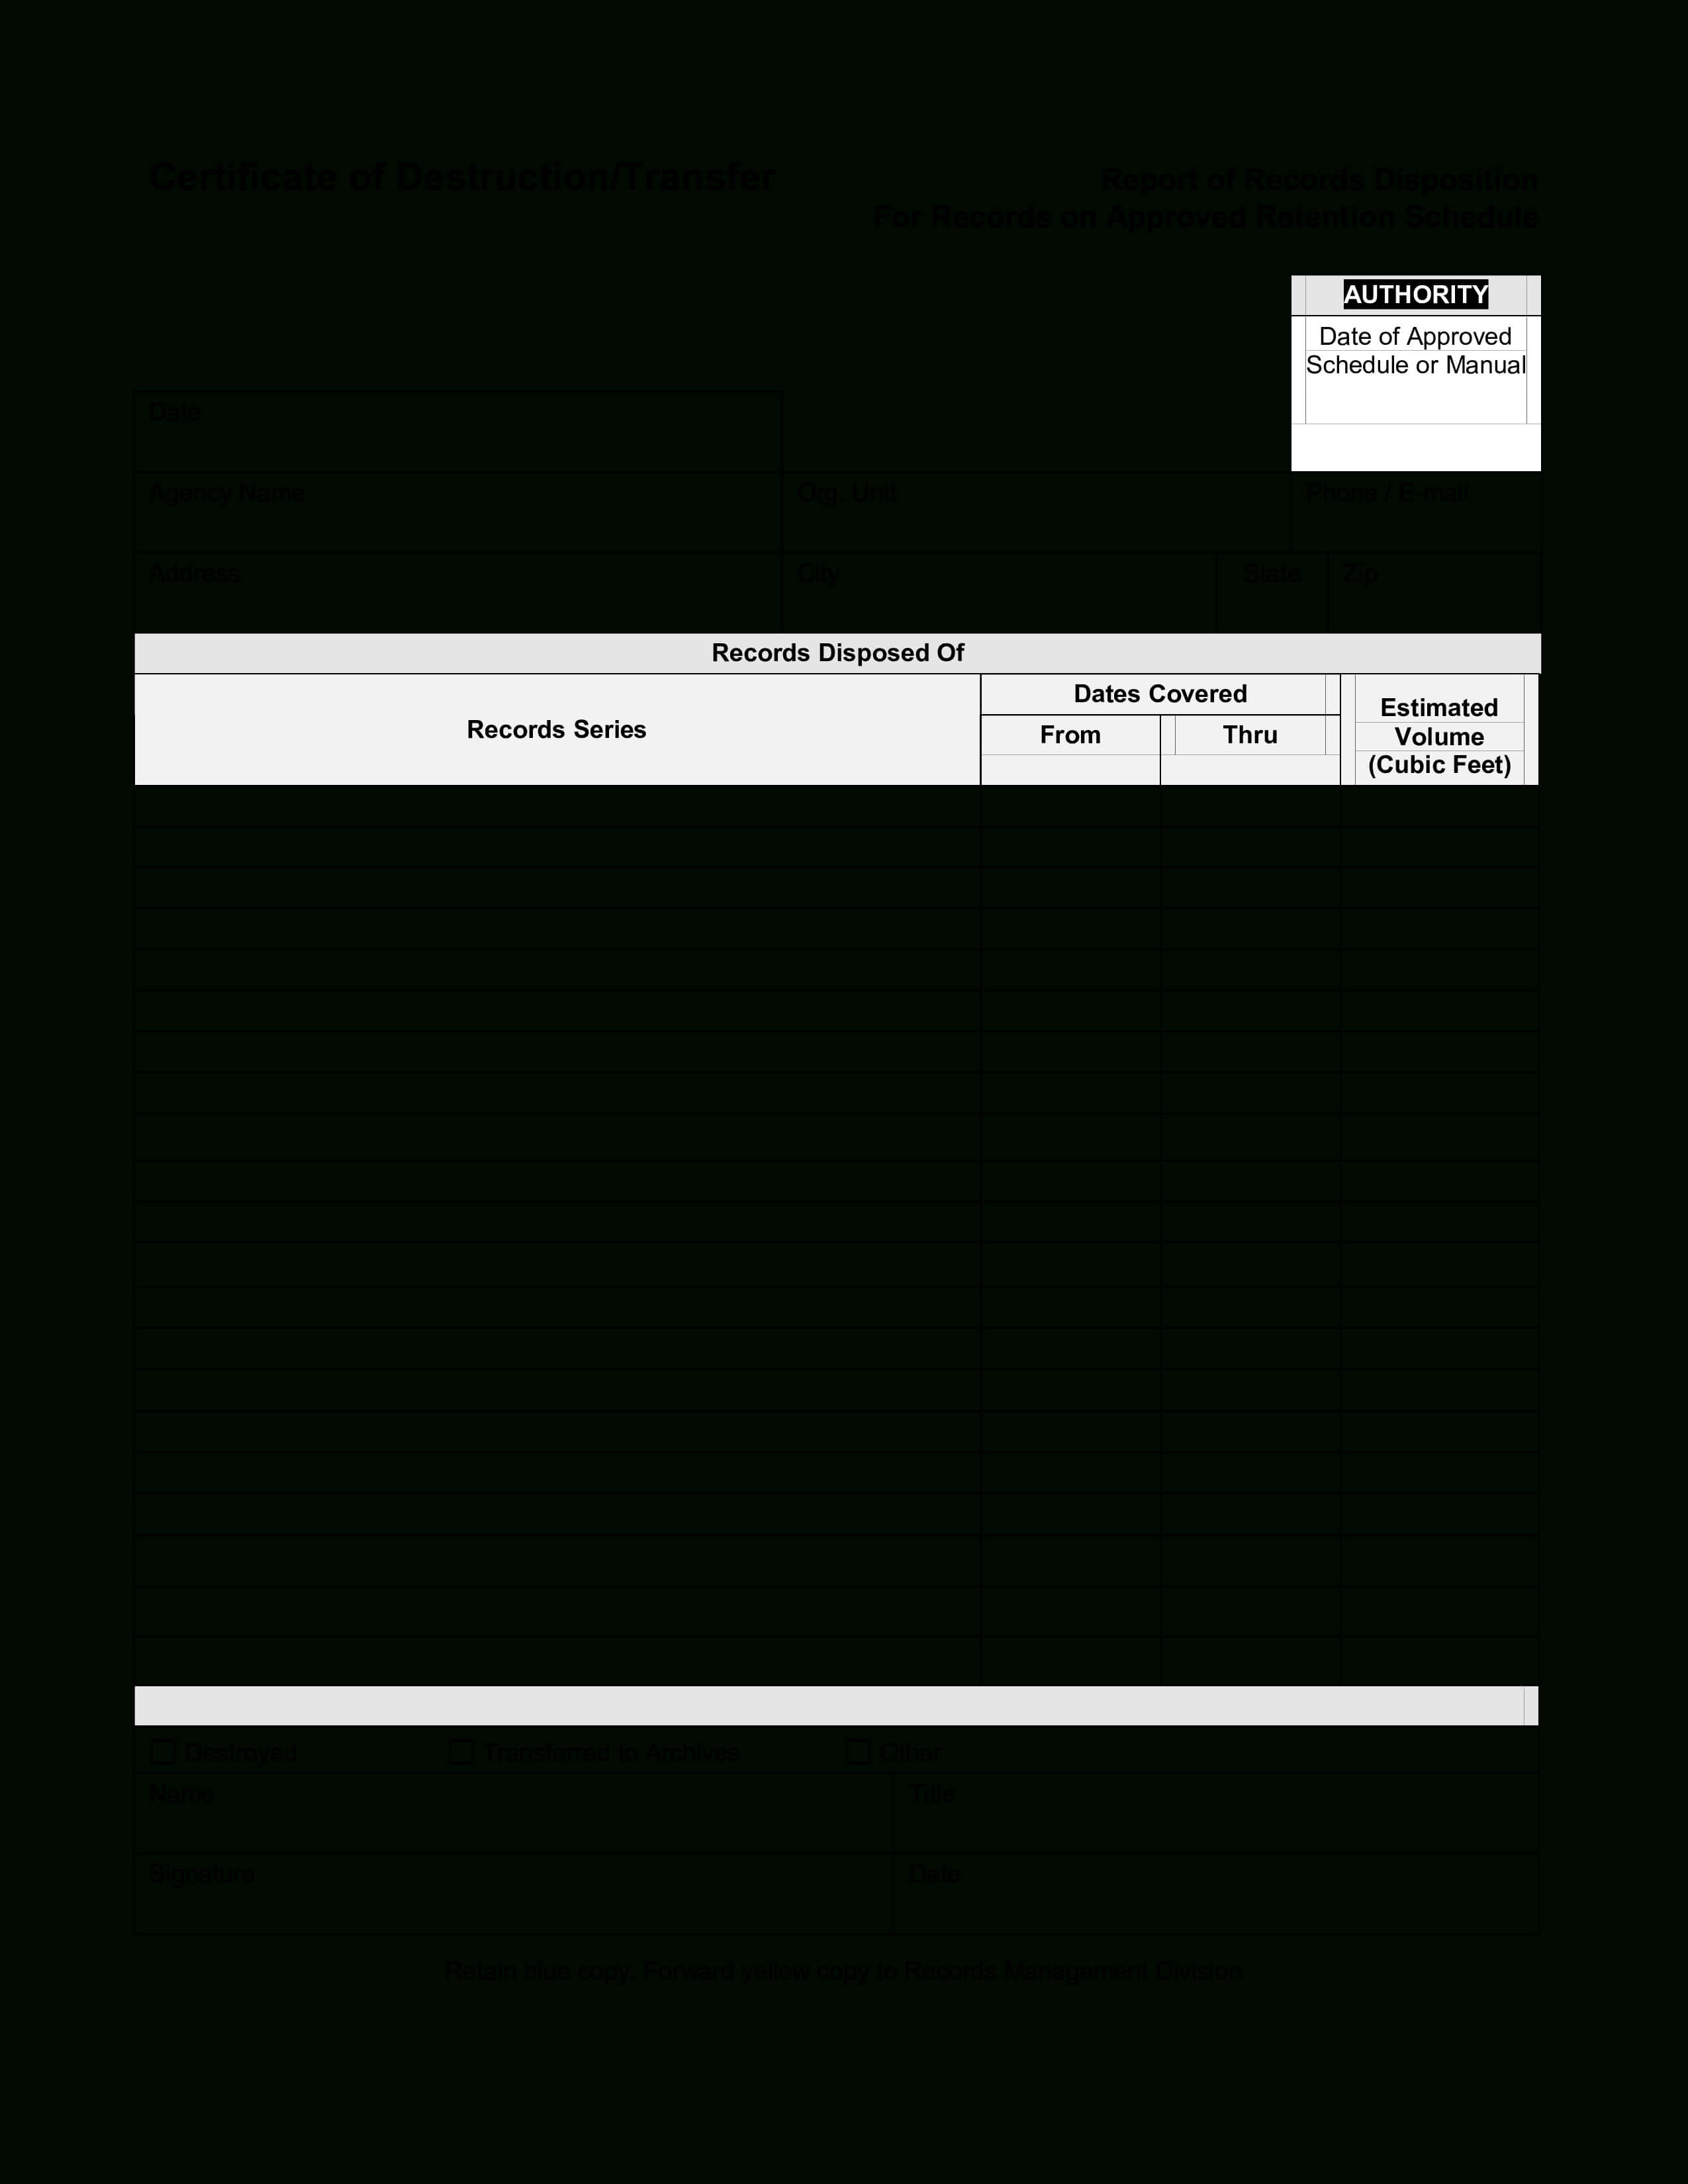 Blank Certificate Of Destruction | Templates At Throughout Free Certificate Of Destruction Template